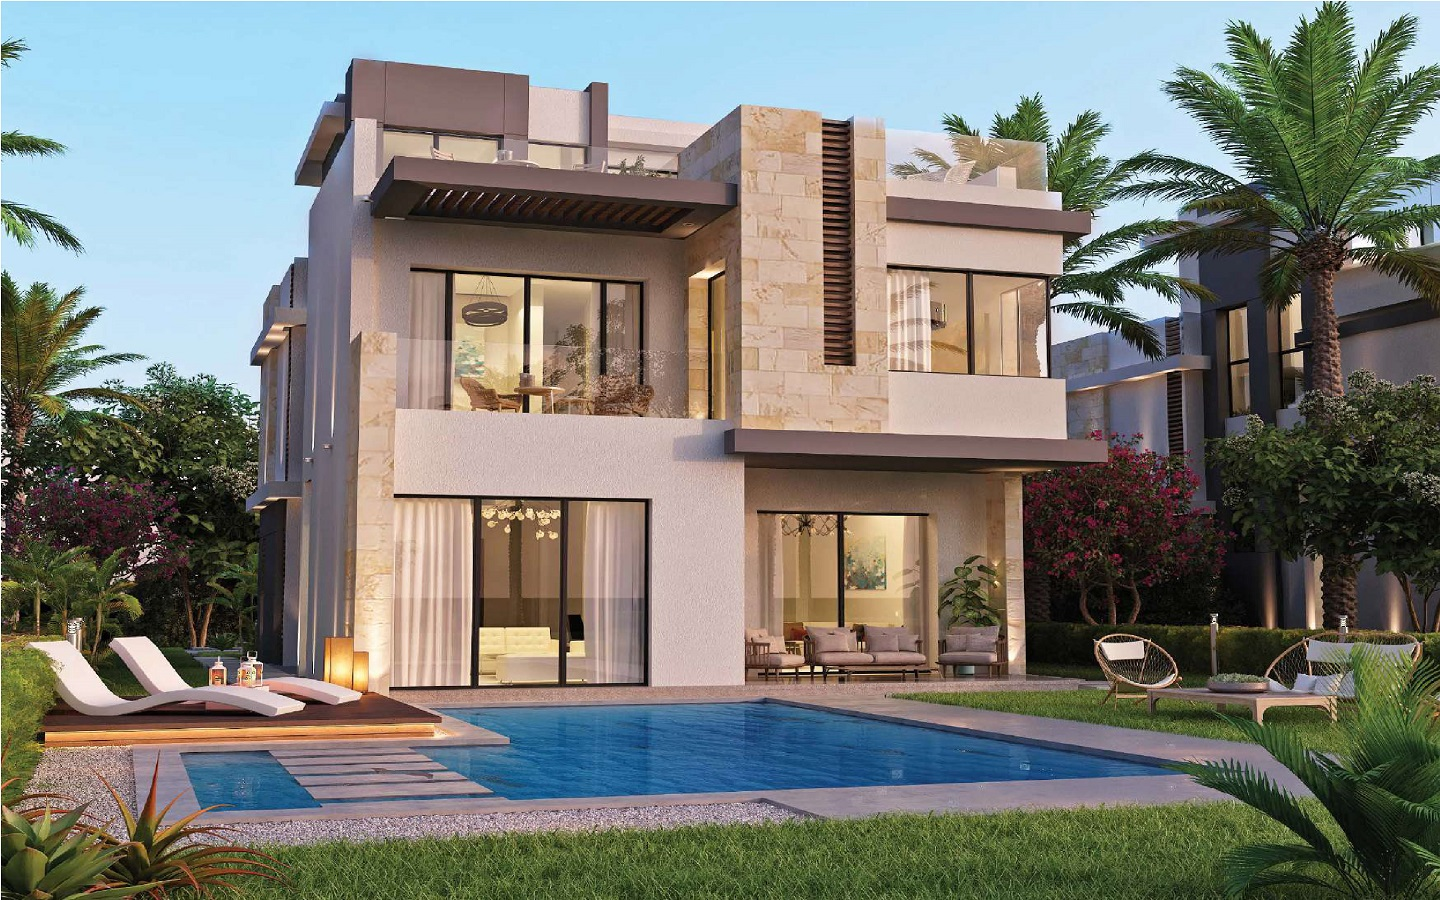 TAWNY 6 October Compound by Hyde Park Developments - Town House - Twin House - Stand Alone Villa - Tawny Master Plan and Location and Prices - 8 Gates Real Estate Egypt (0)